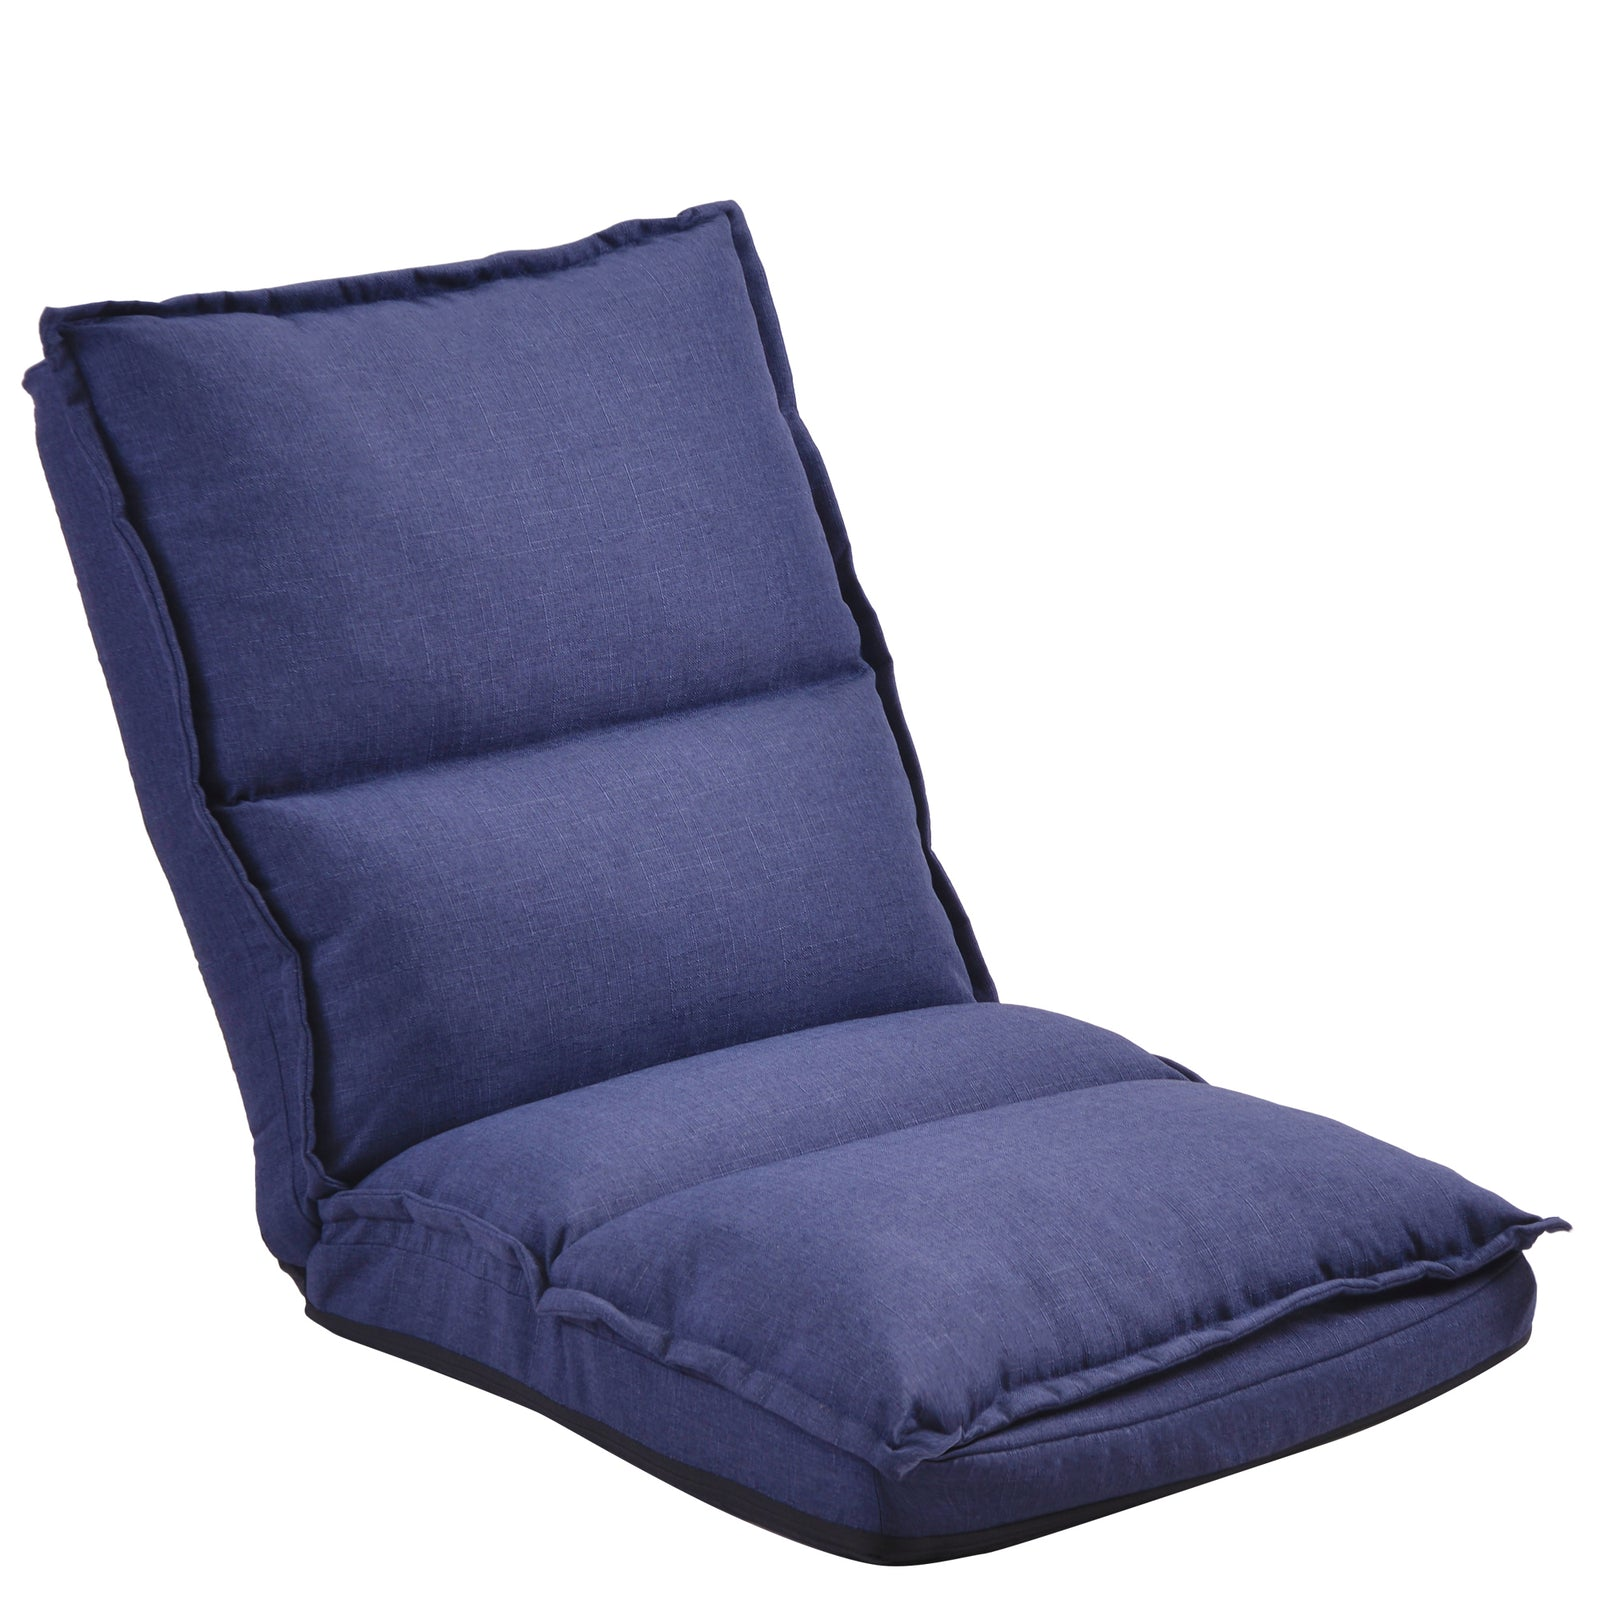 Dark Slate Blue Fabric Upholstered Folding Lazy Sofa Chair Adjustable Floor Sofa Chair BH192325